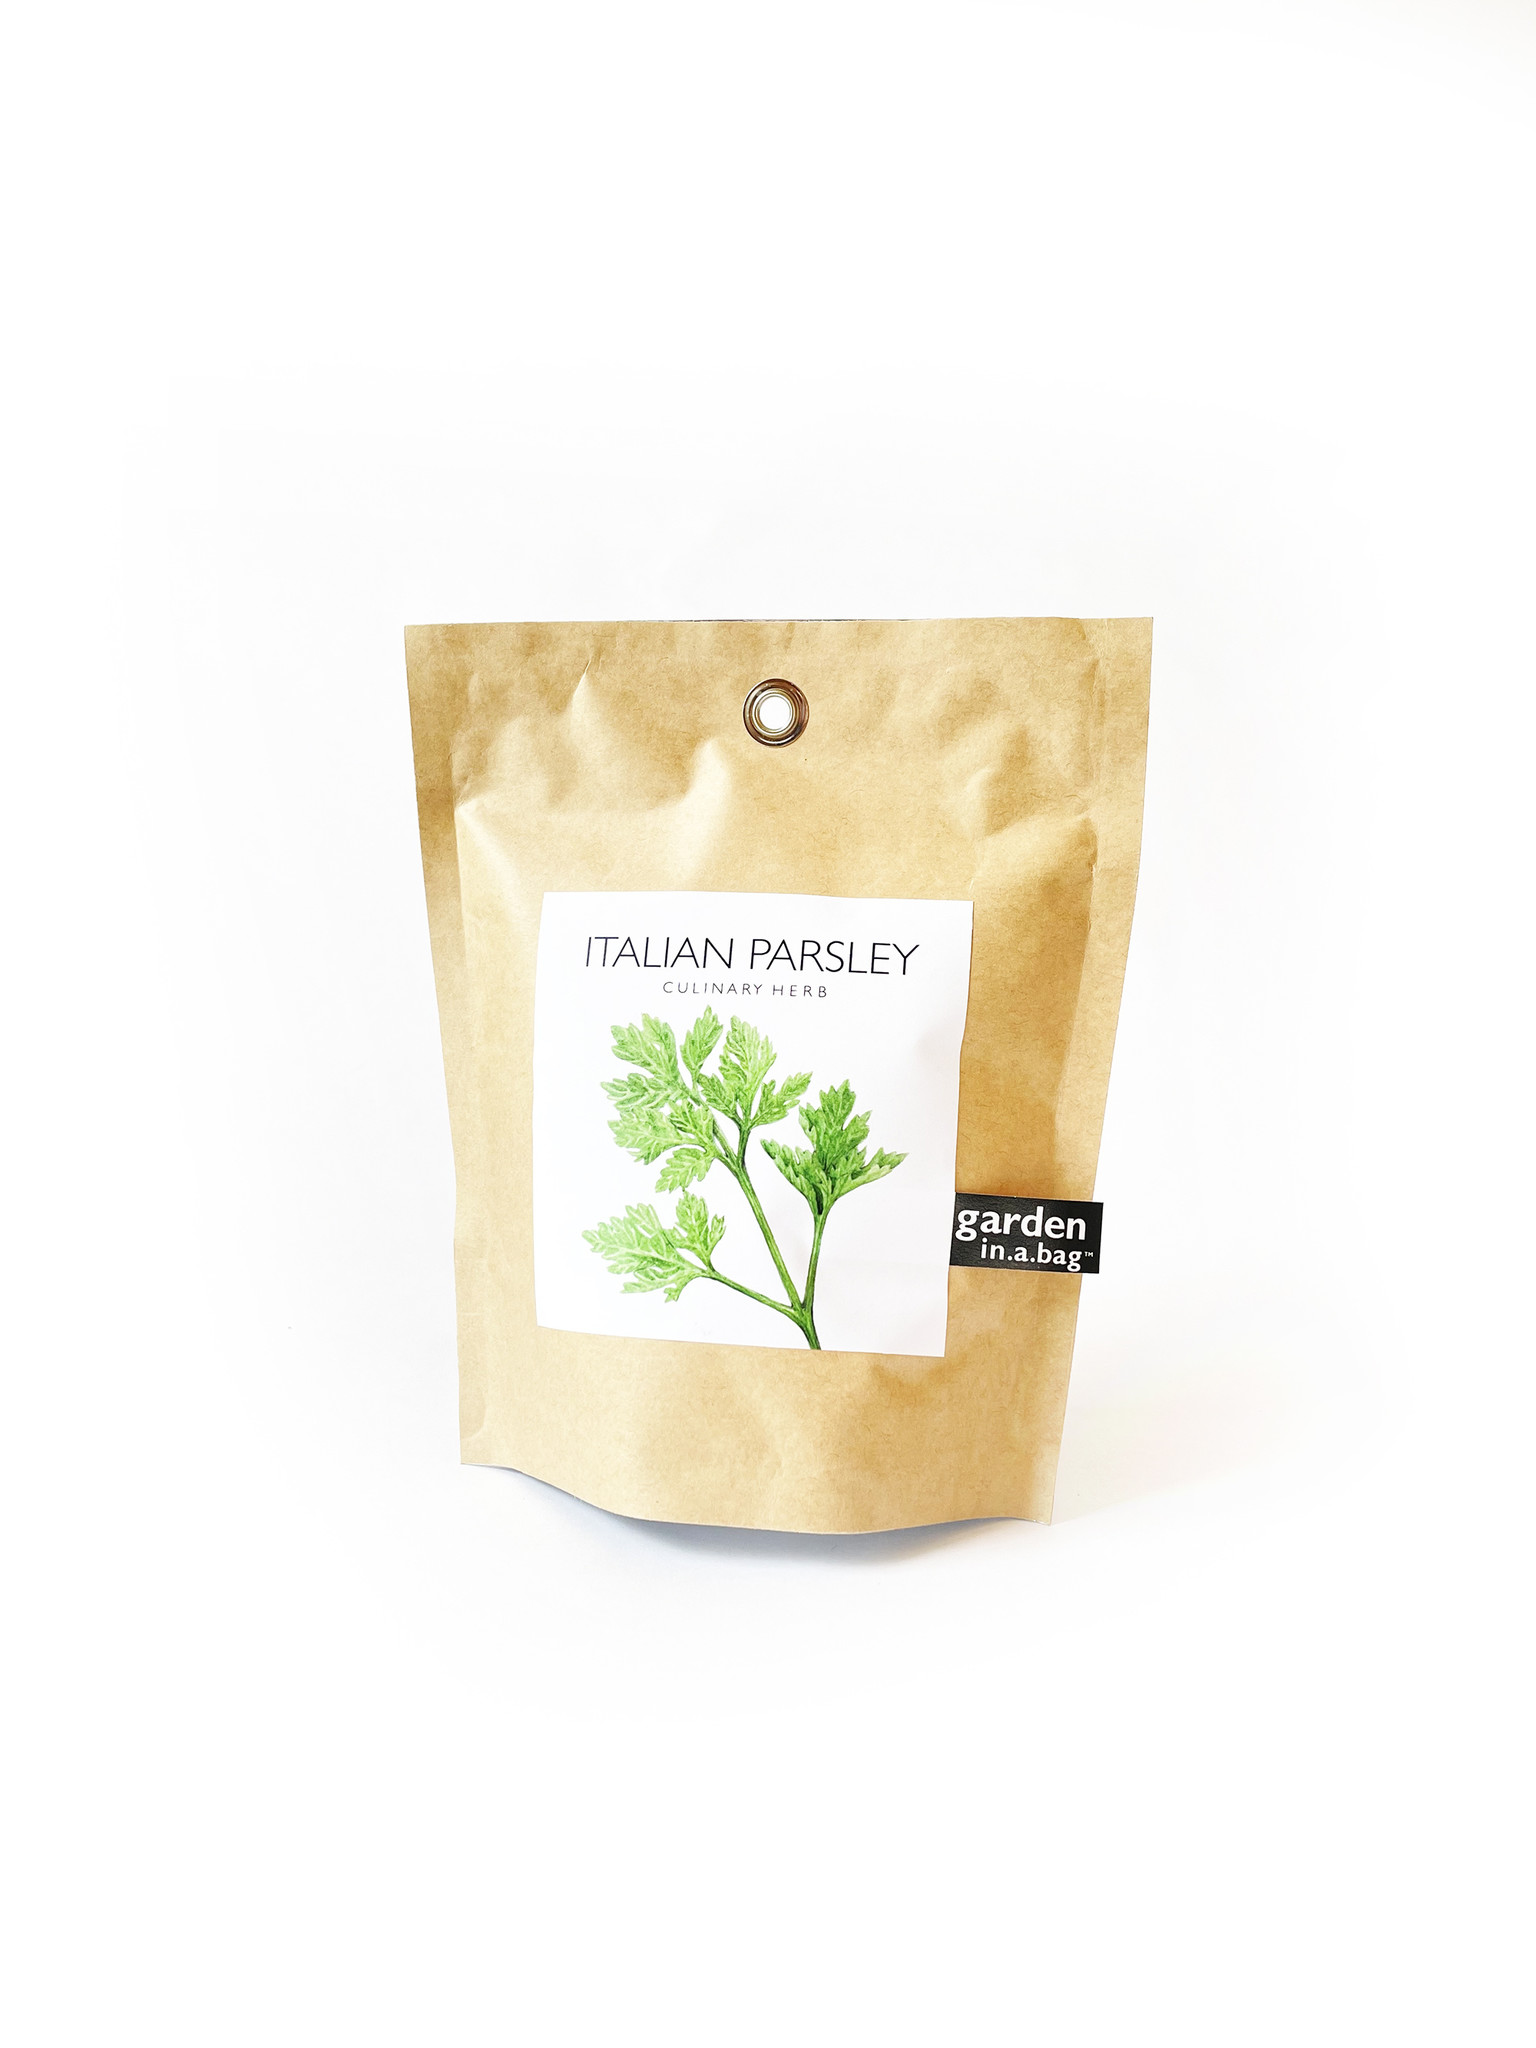 Potting Shed Creations Italian Parsley Garden in a Bag-1